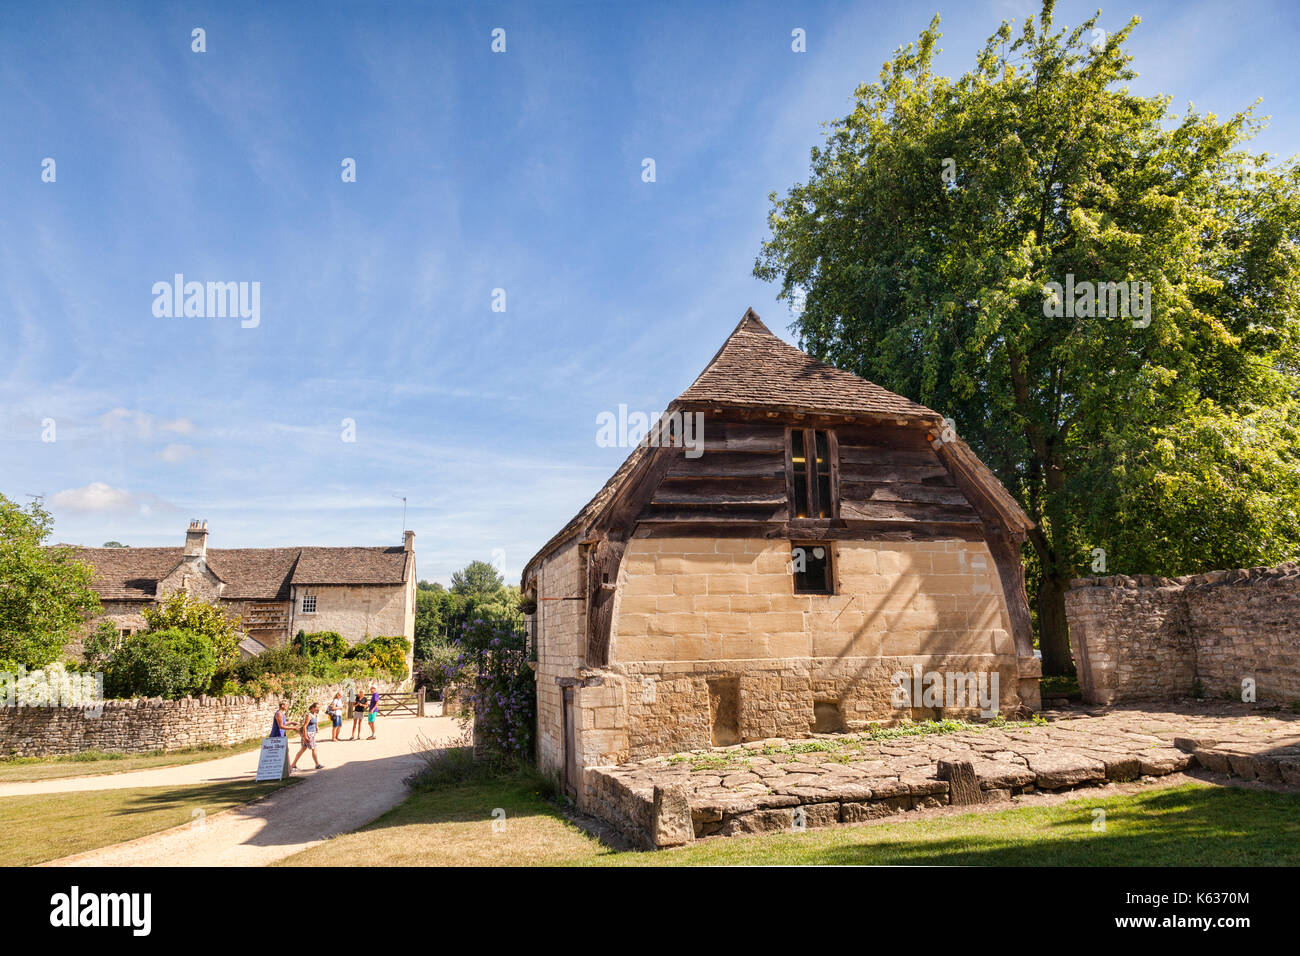 7 July 2017: Bradford on Avon, Somerset, England, UK - Barton Farm, historically an outlying farm of Shaftesbury Abbey. - Stock Image